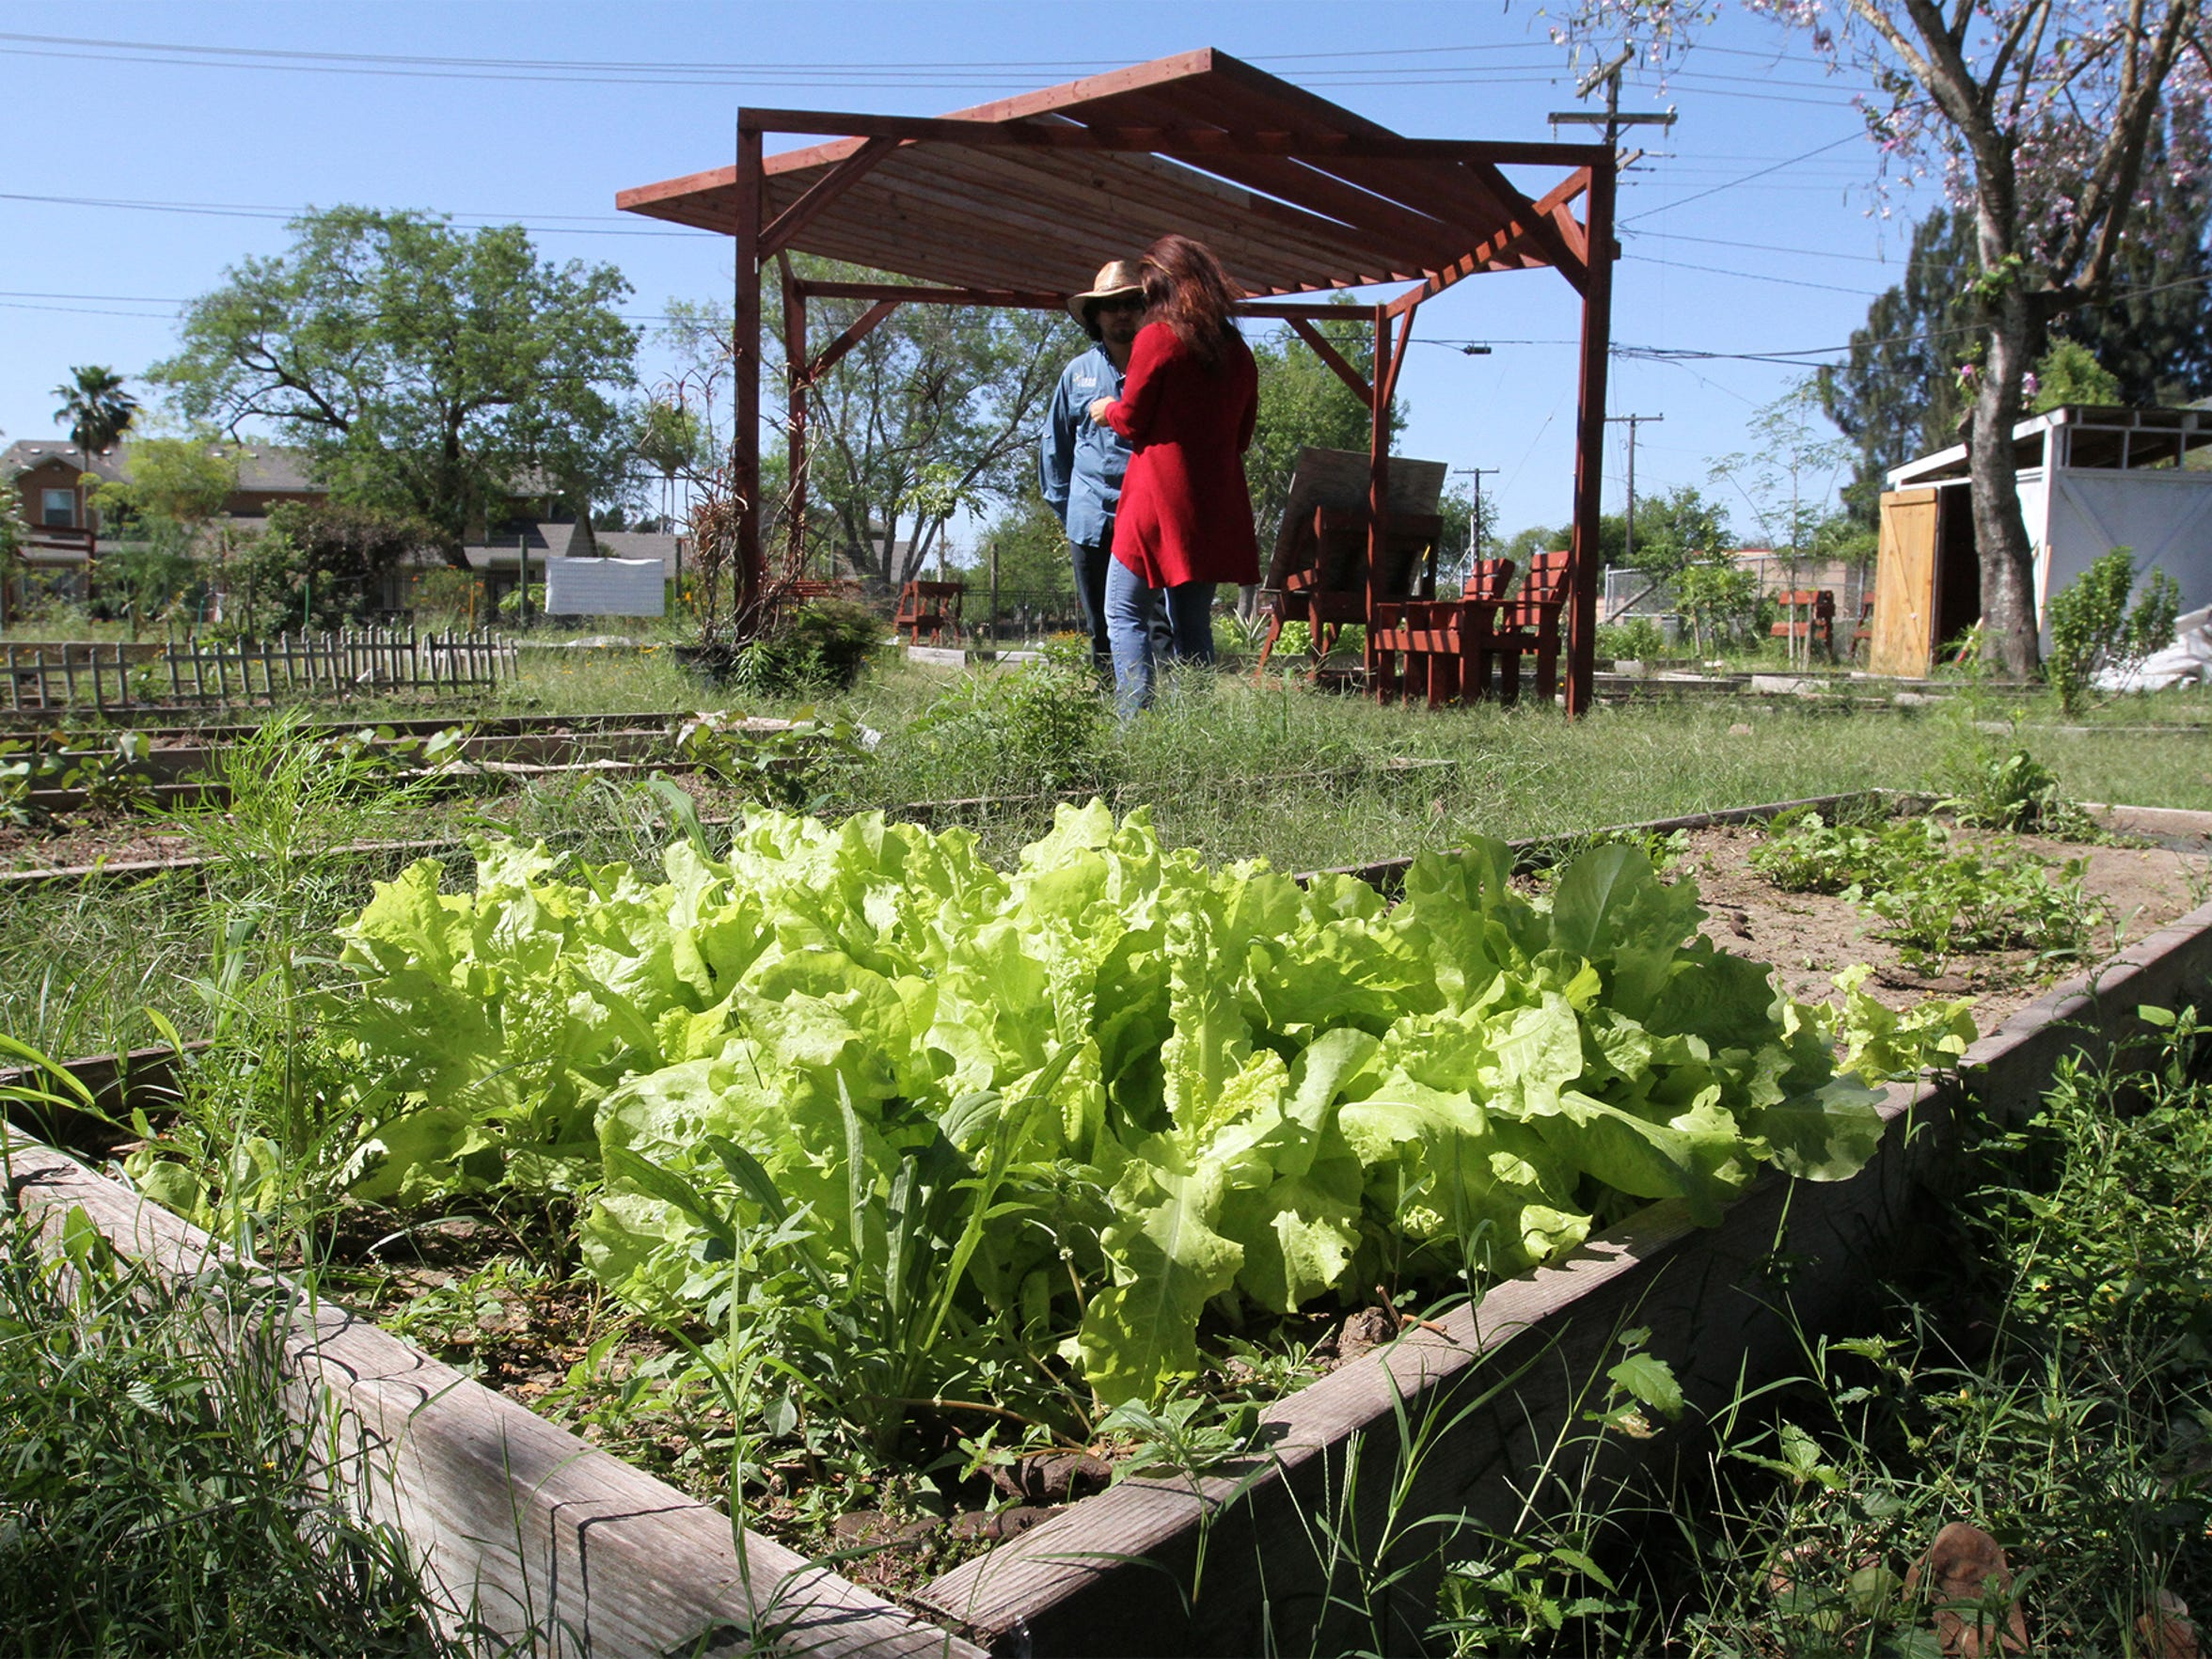 Members of the Brownsville Community Garden grow a variety of vegetables for sale at nearby farmers markets.